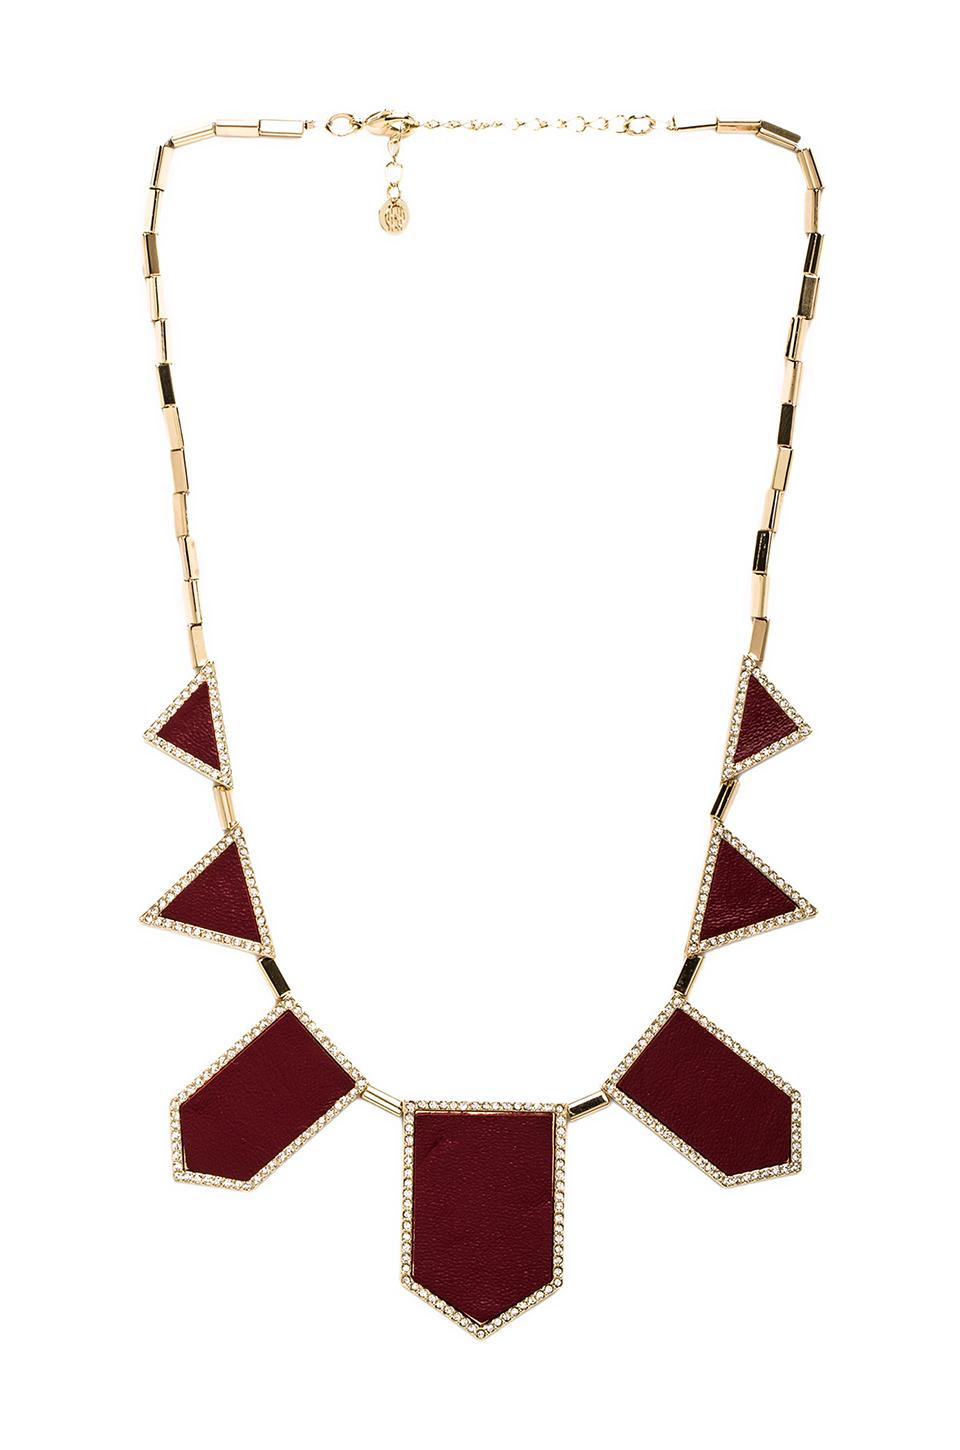 House of Harlow 1960 House of Harlow Pave Five Station Necklace in Gold Tone Cranberry